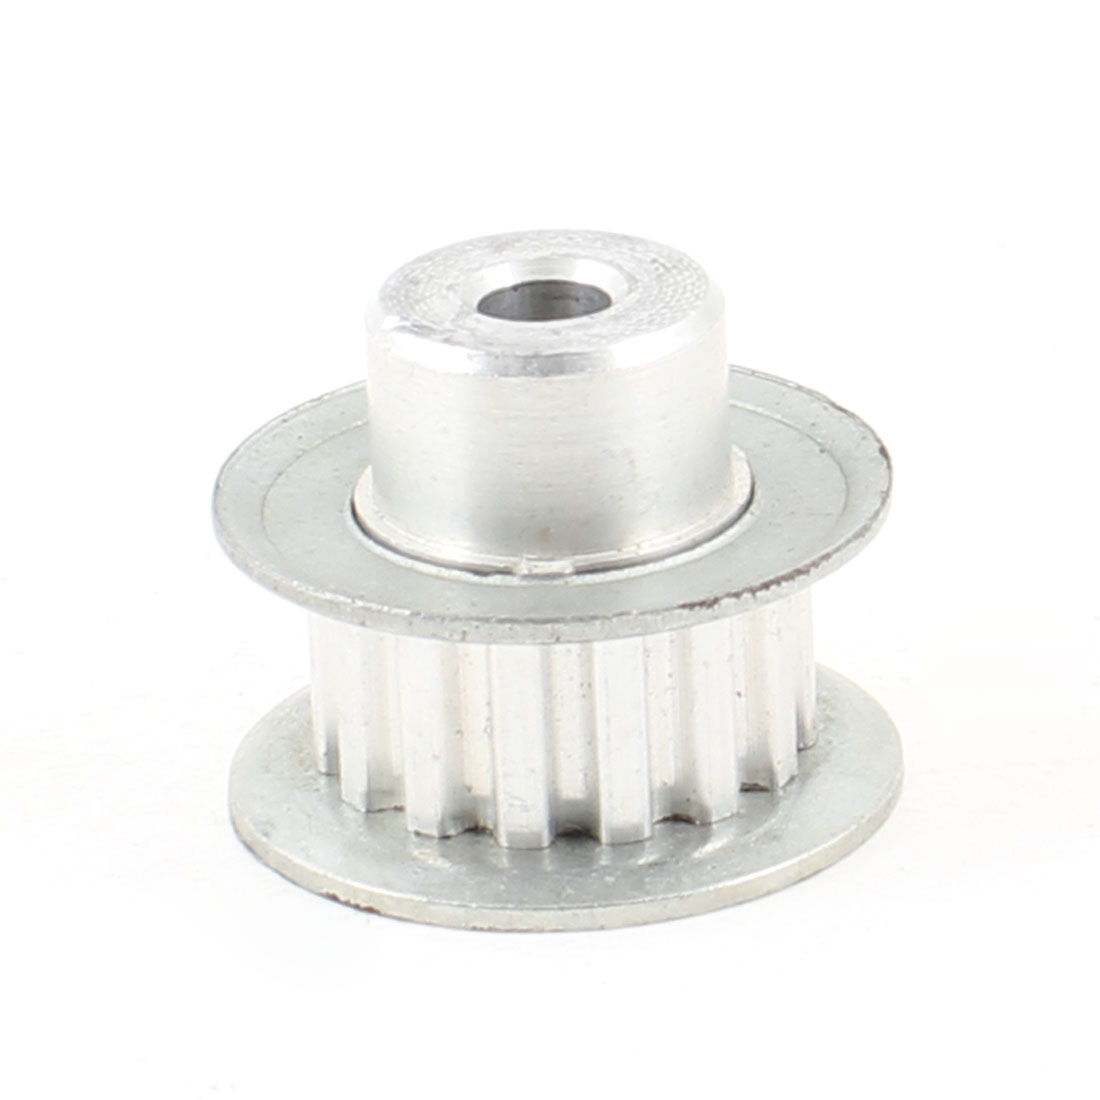 Silver Tone Aluminum Alloy XL Type 15 Teeth 6.2mm Pilot Bore Timing Pulley